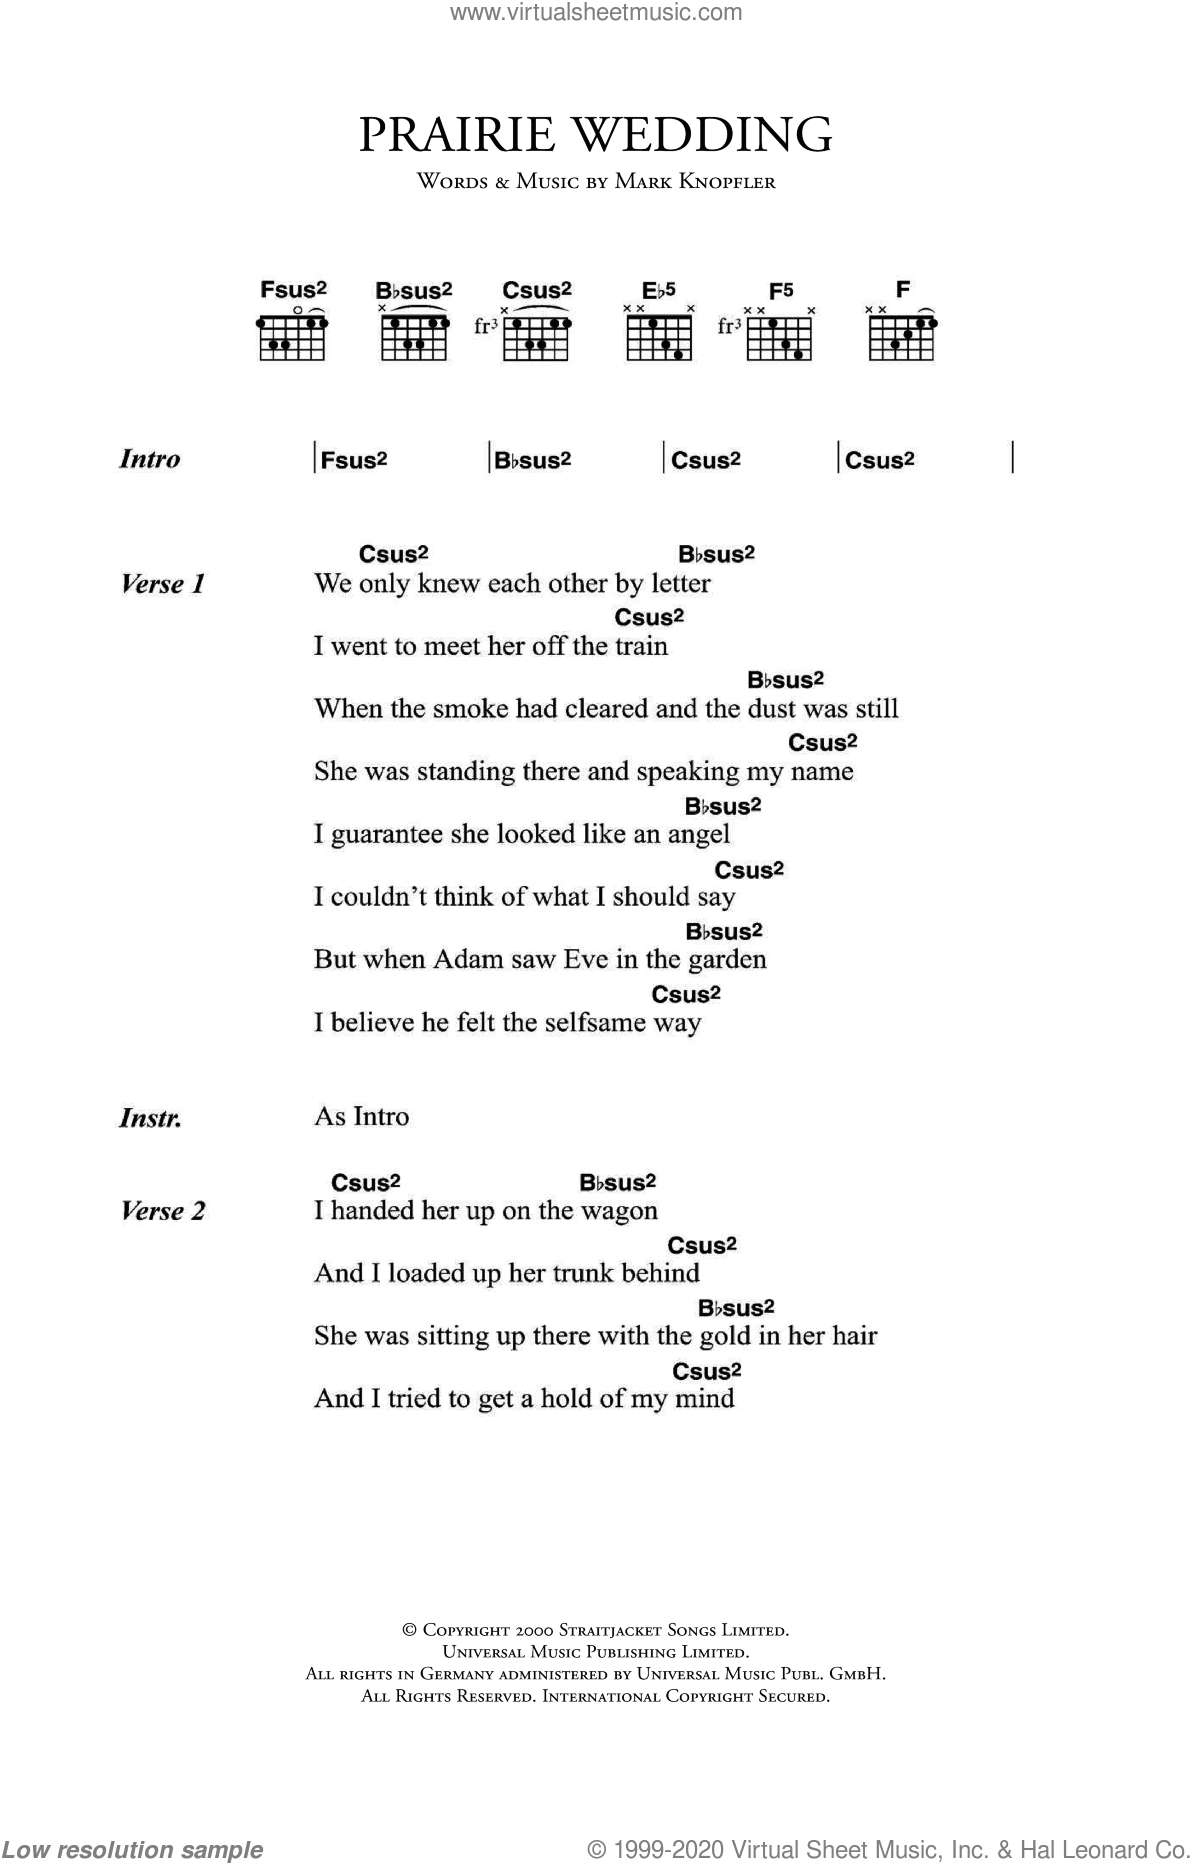 Knopfler - Prairie Wedding sheet music for guitar (chords) [PDF]